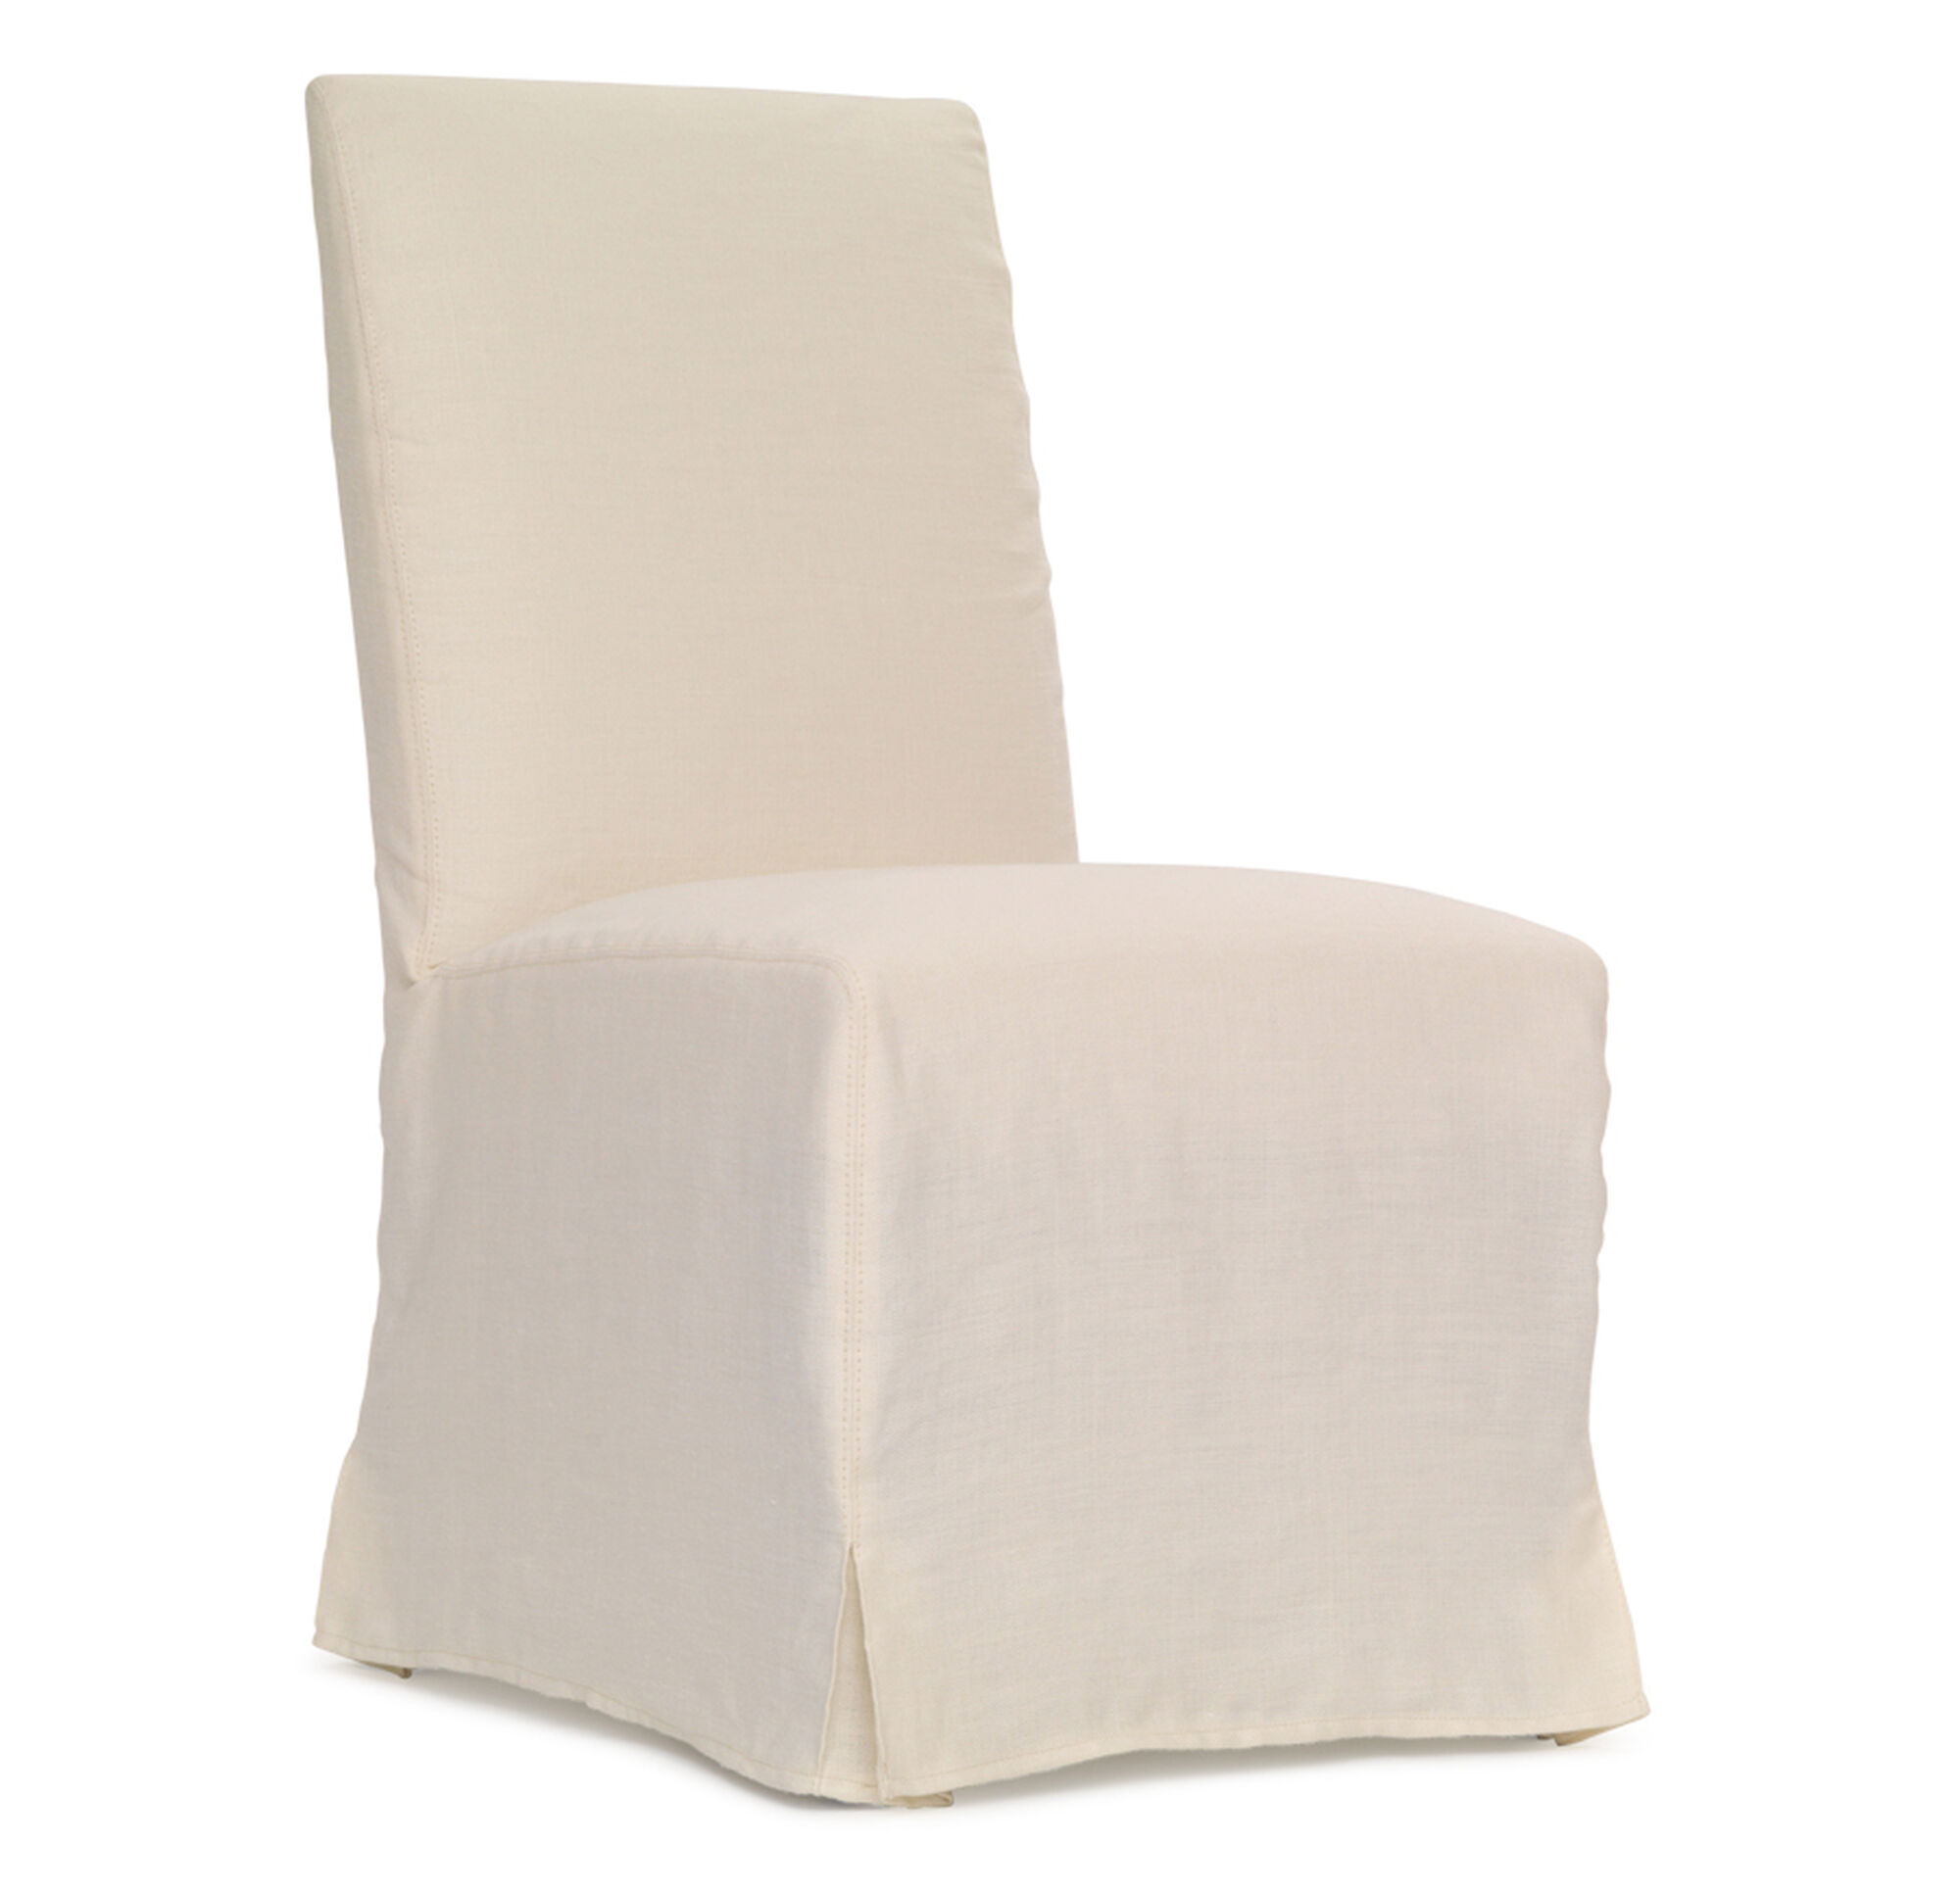 JULIA SIDE DINING CHAIR SLIPCOVER